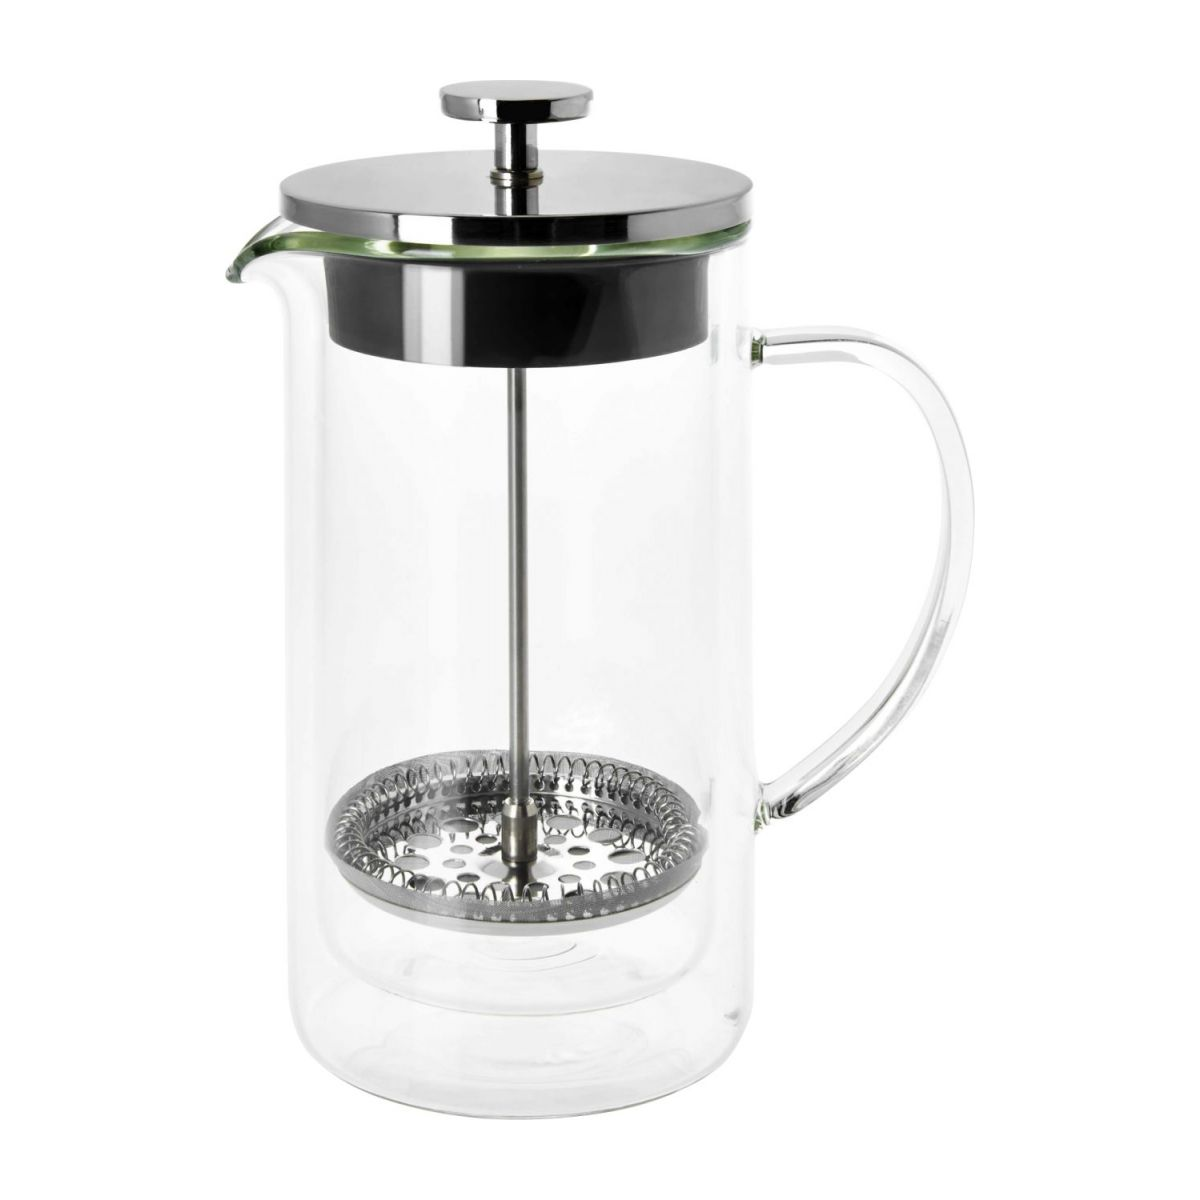 800ml French press coffee maker n°3